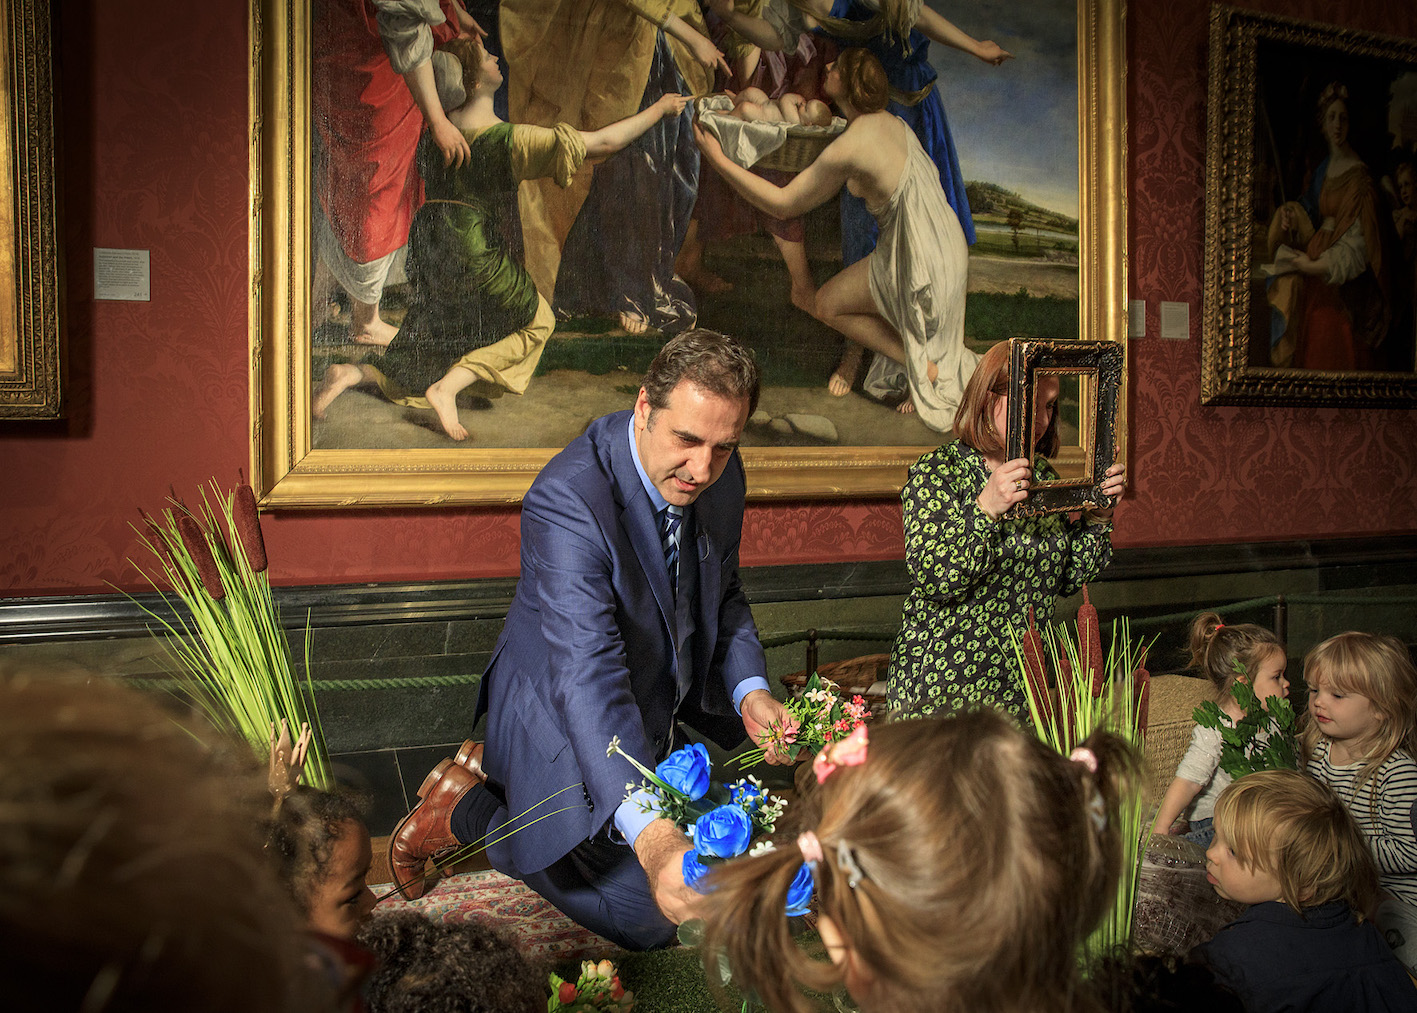 National Gallery Director, Dr Gabriele Finaldi, launching the #SaveOrazio Appeal by hosting a The Finding of Moses storytelling session with a group of children from the Soho Family Centre. Photo © The National Gallery, London